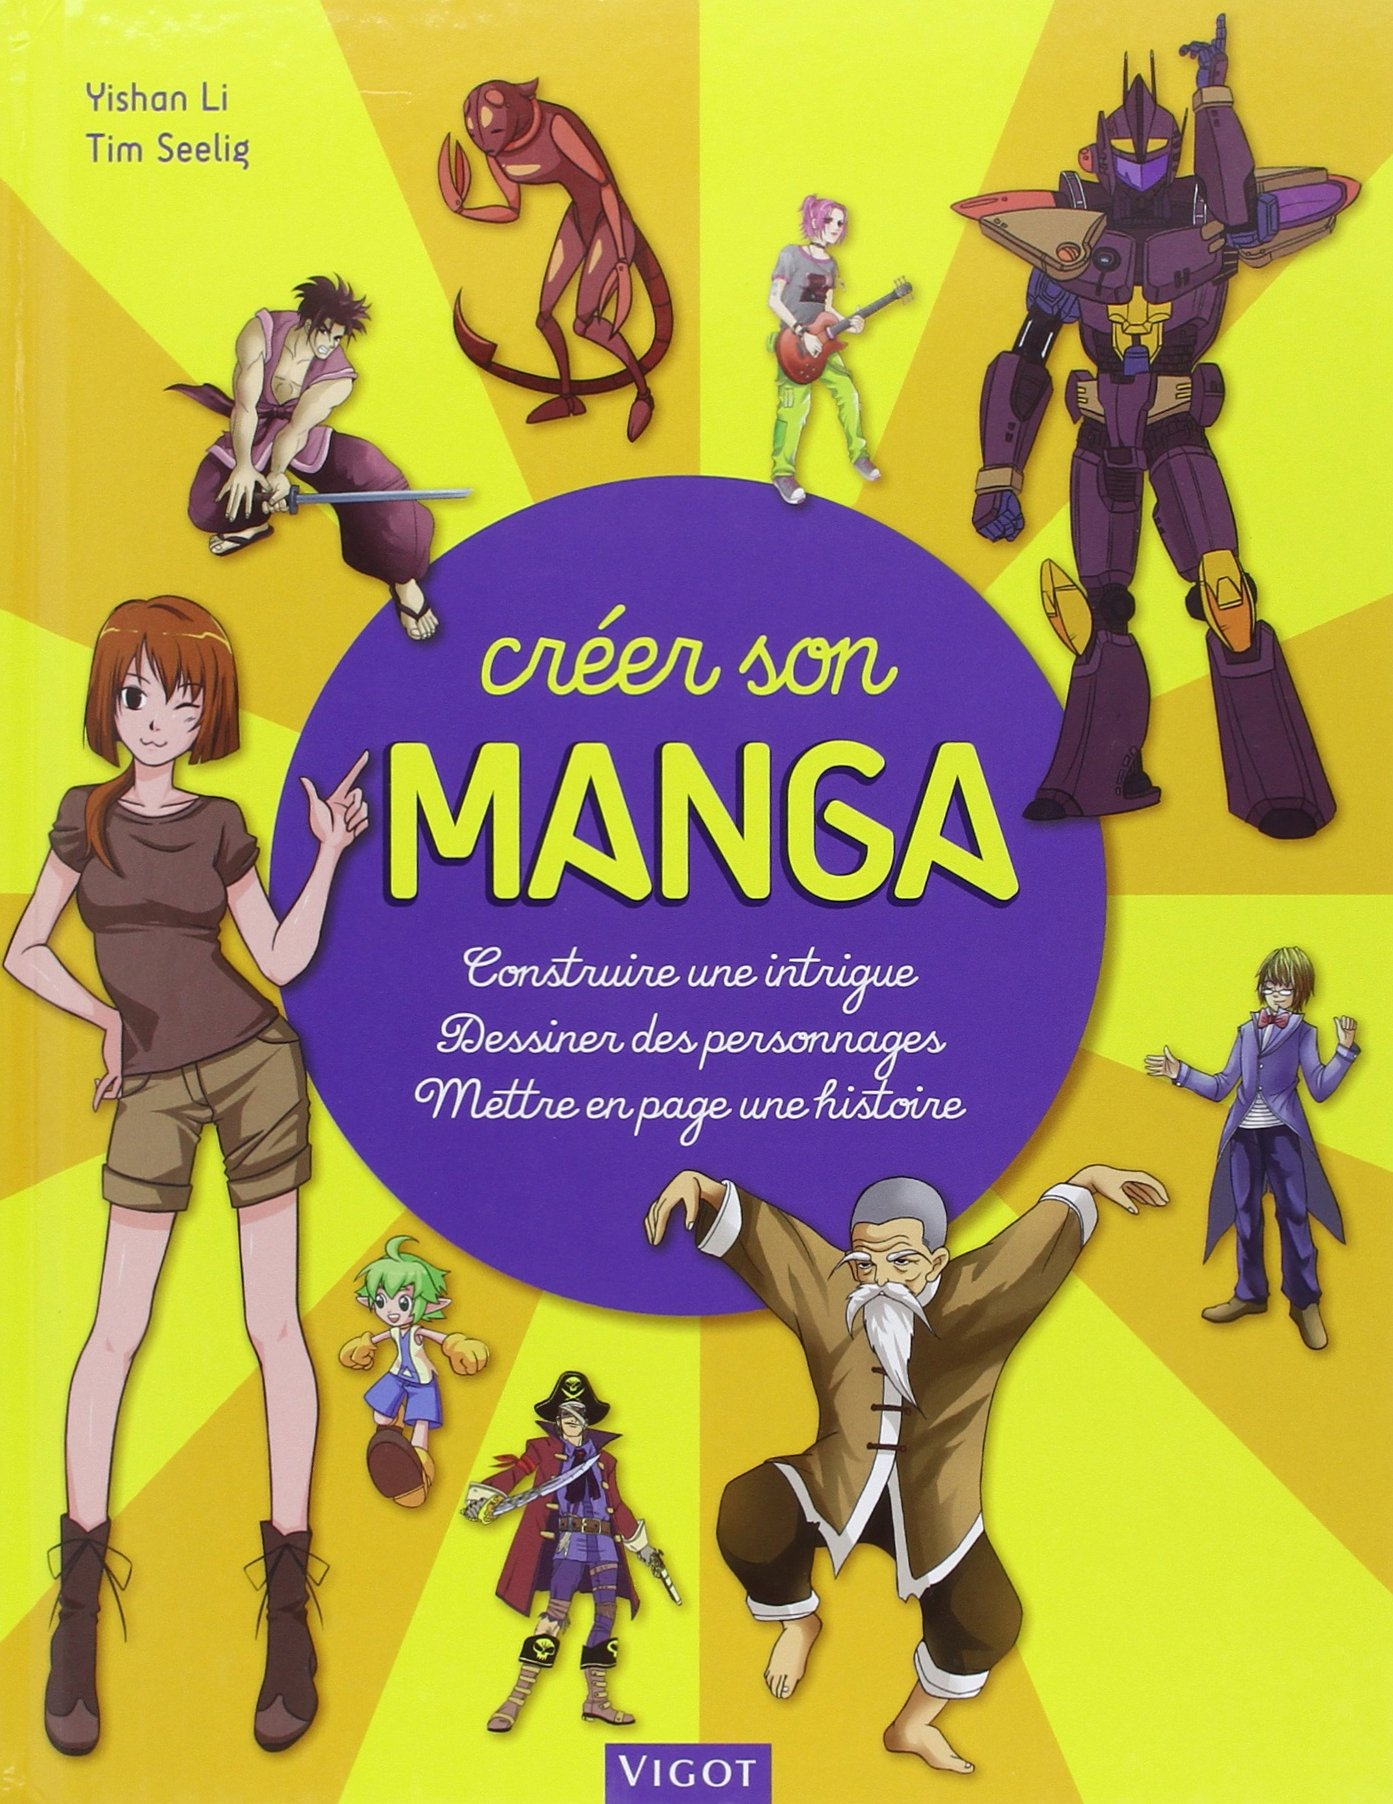 http://www.amazon.fr/Cr%C3%A9er-son-manga-Construire-personnages/dp/2711422607/ref=sr_1_7?s=books&ie=UTF8&qid=1427795480&sr=1-7&keywords=manga